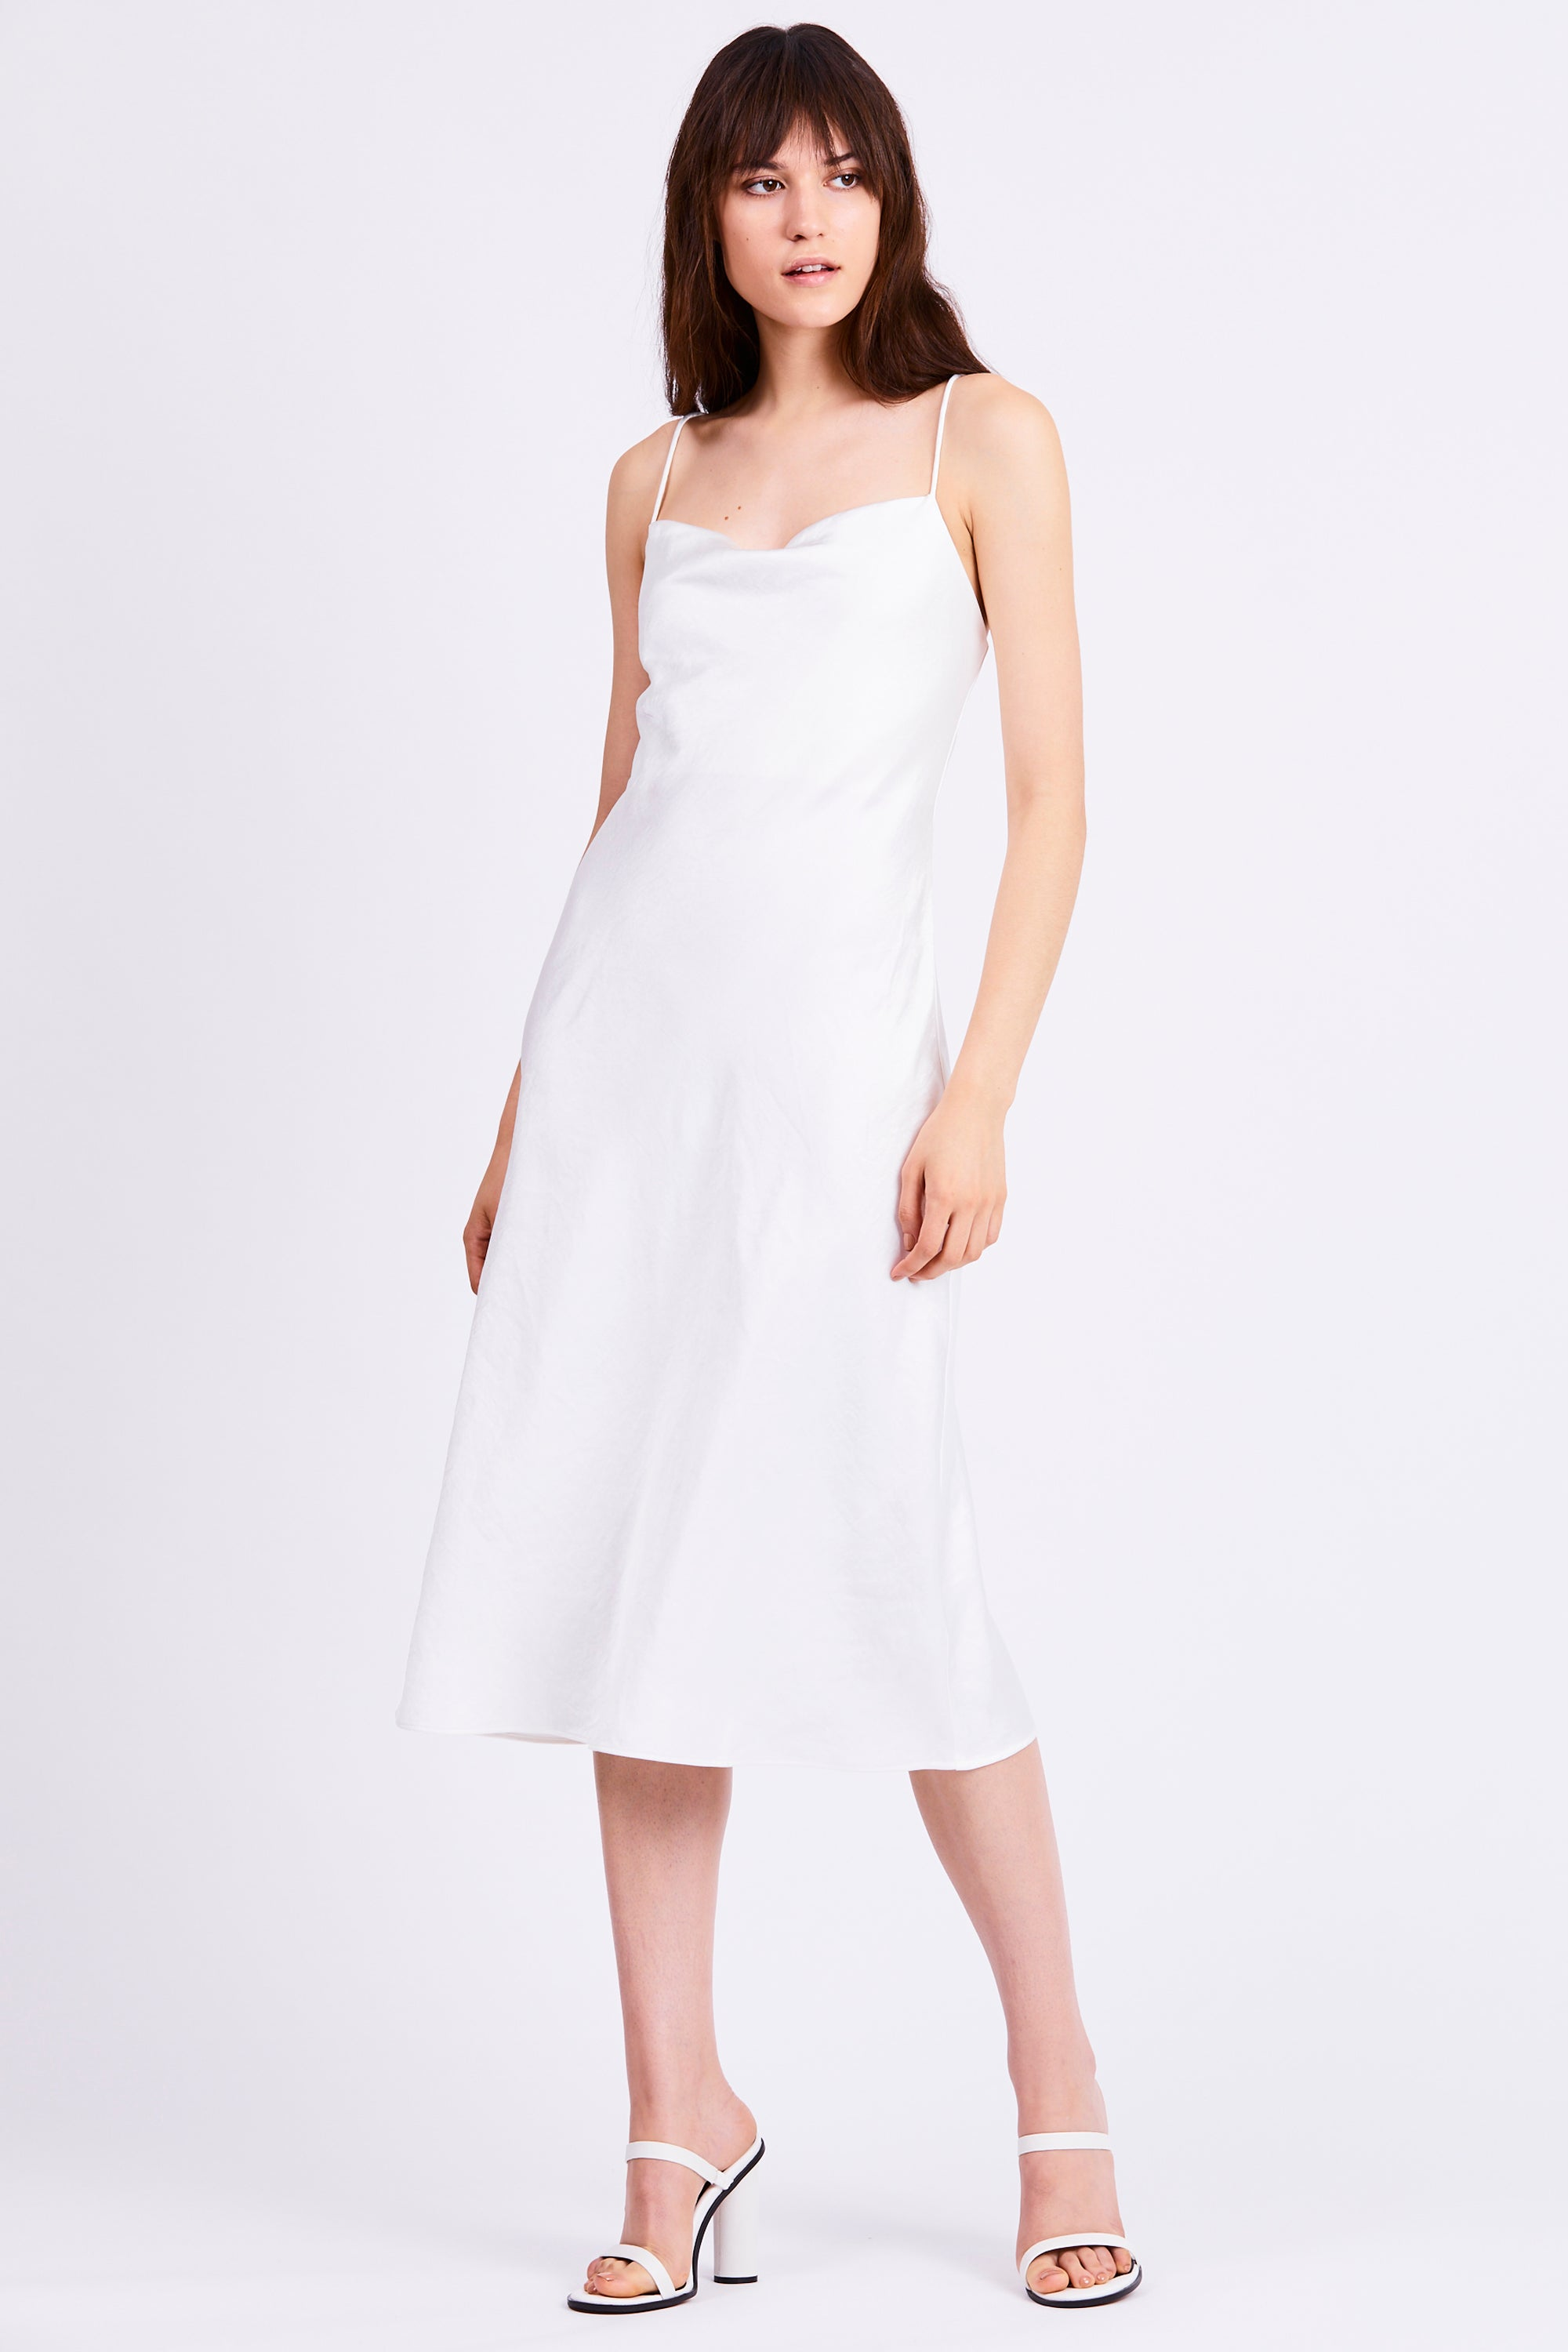 FINAL SAY BIAS SLIP DRESS | WHITE